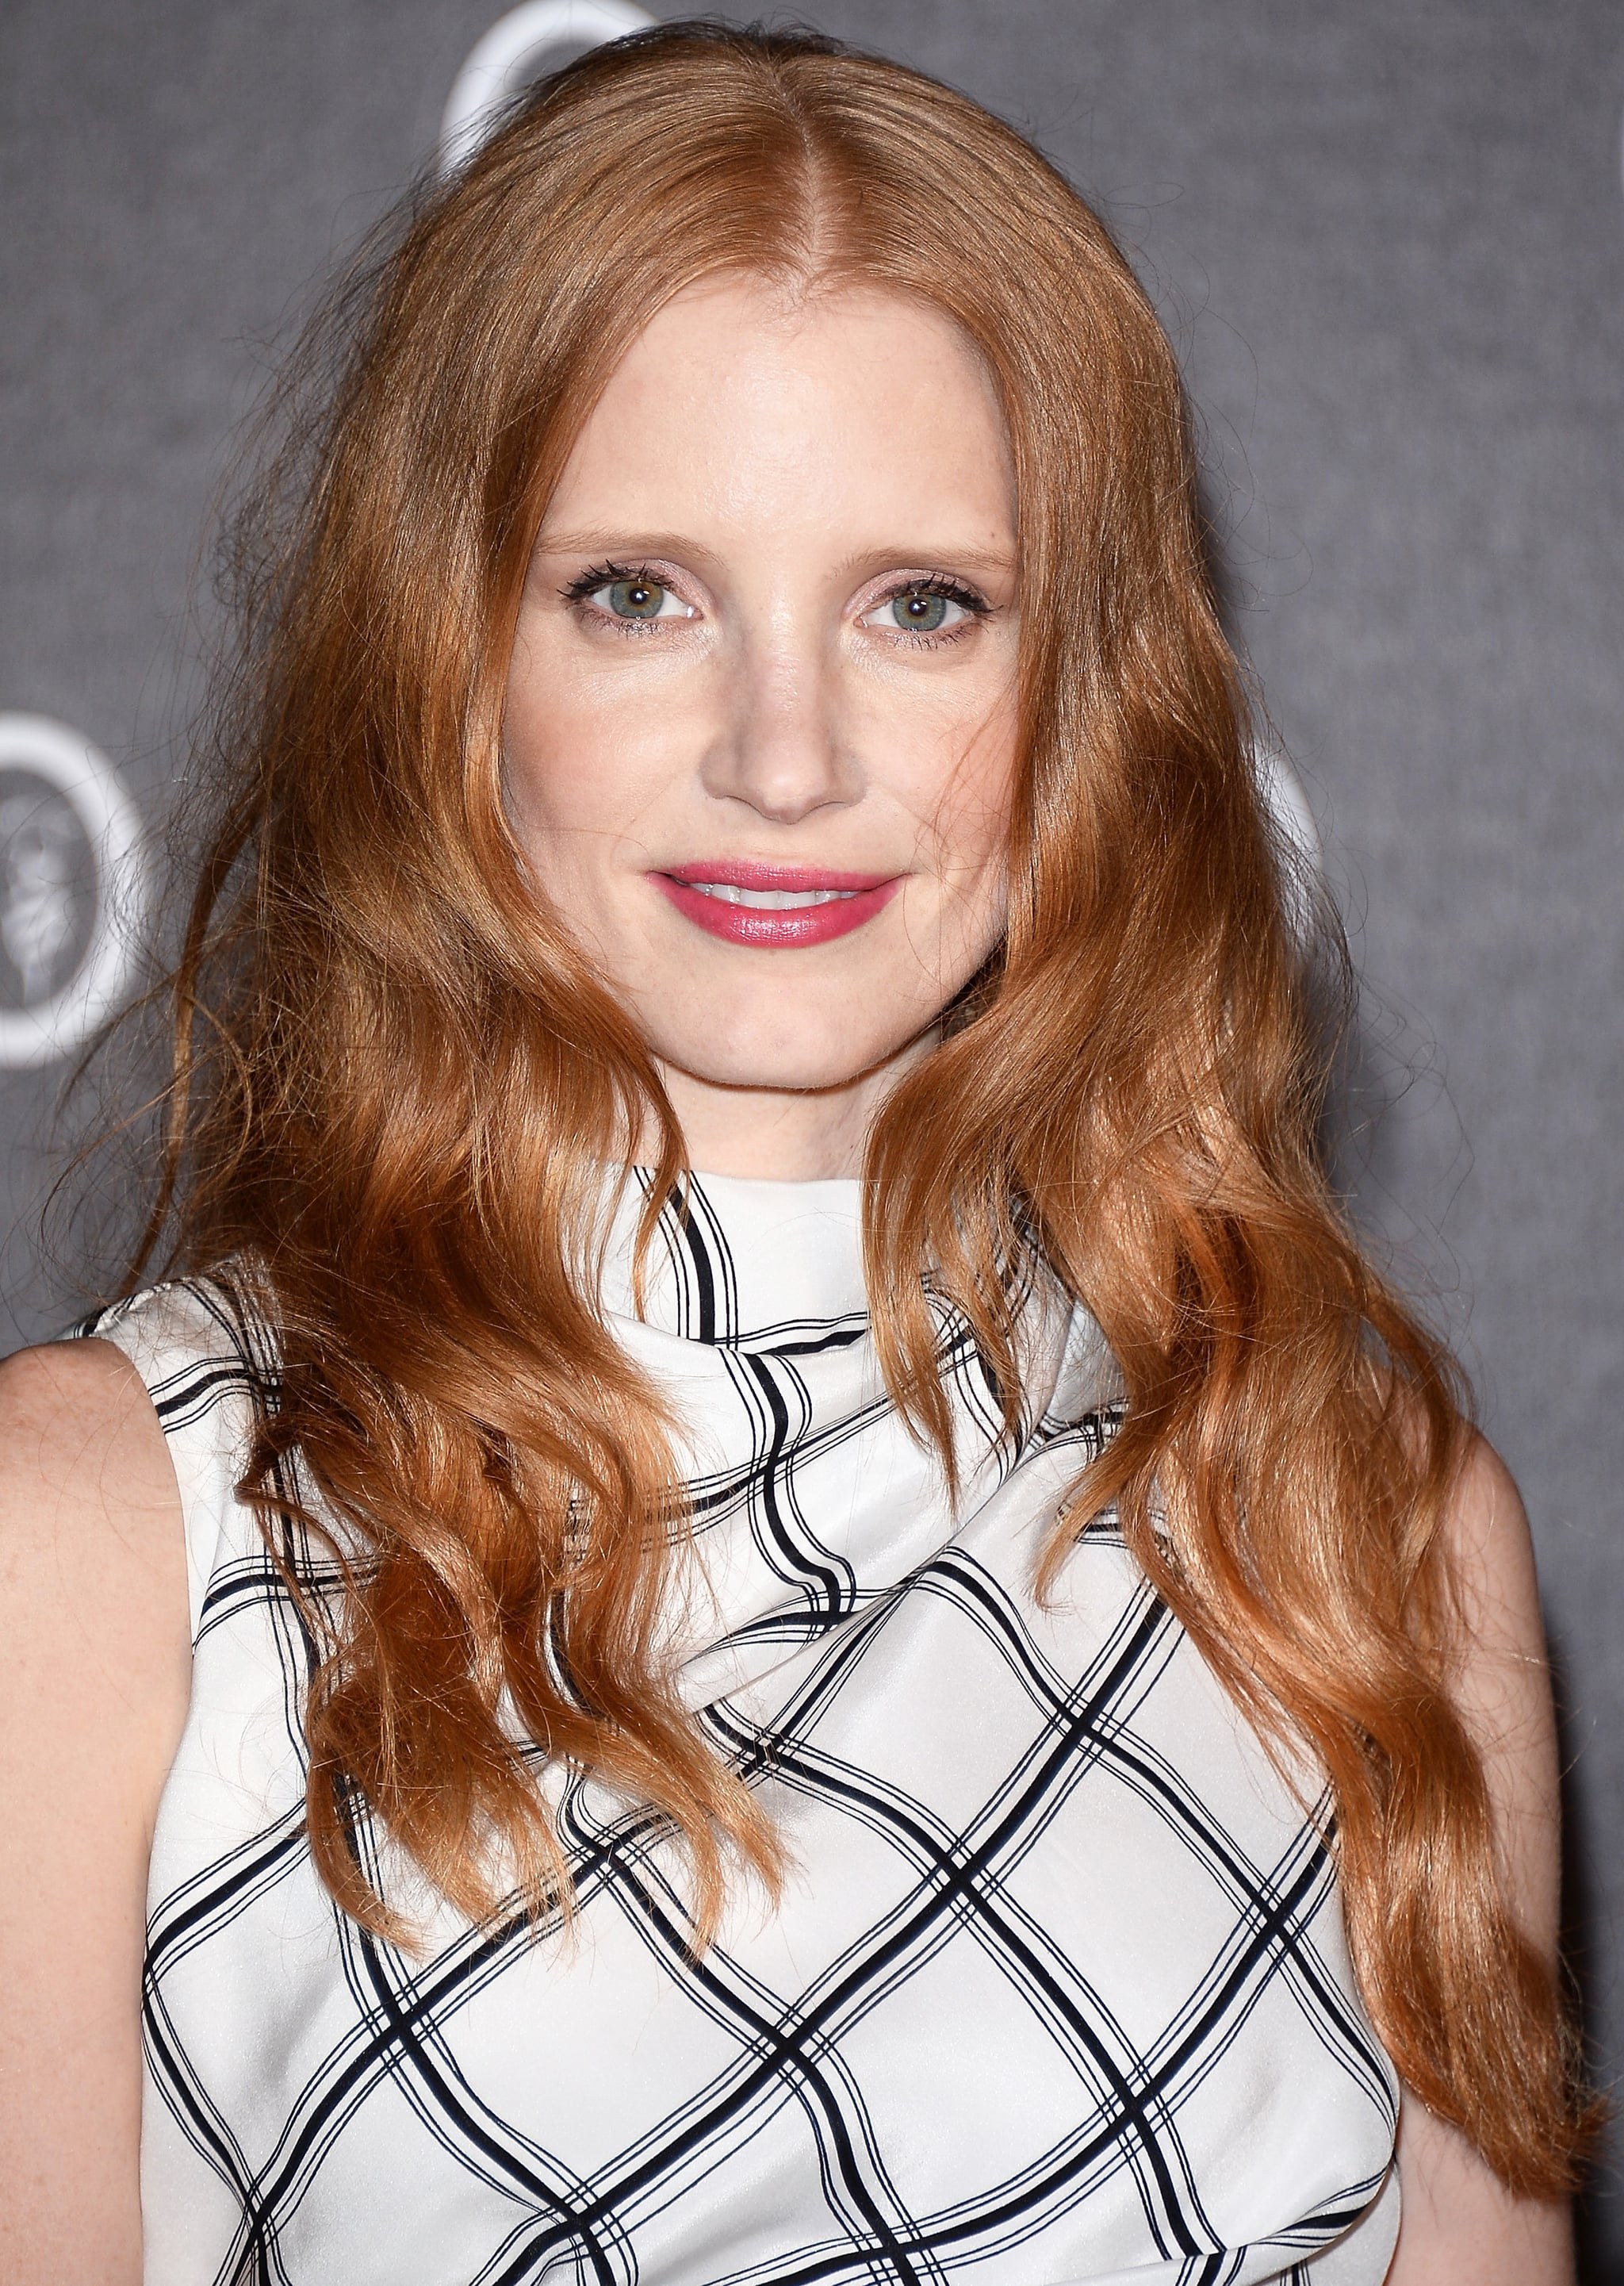 Jessica Chastain was out at a cocktail party in Venice donning polished beach waves with a hint of blush and rose lipstick to accentuate her complexion.